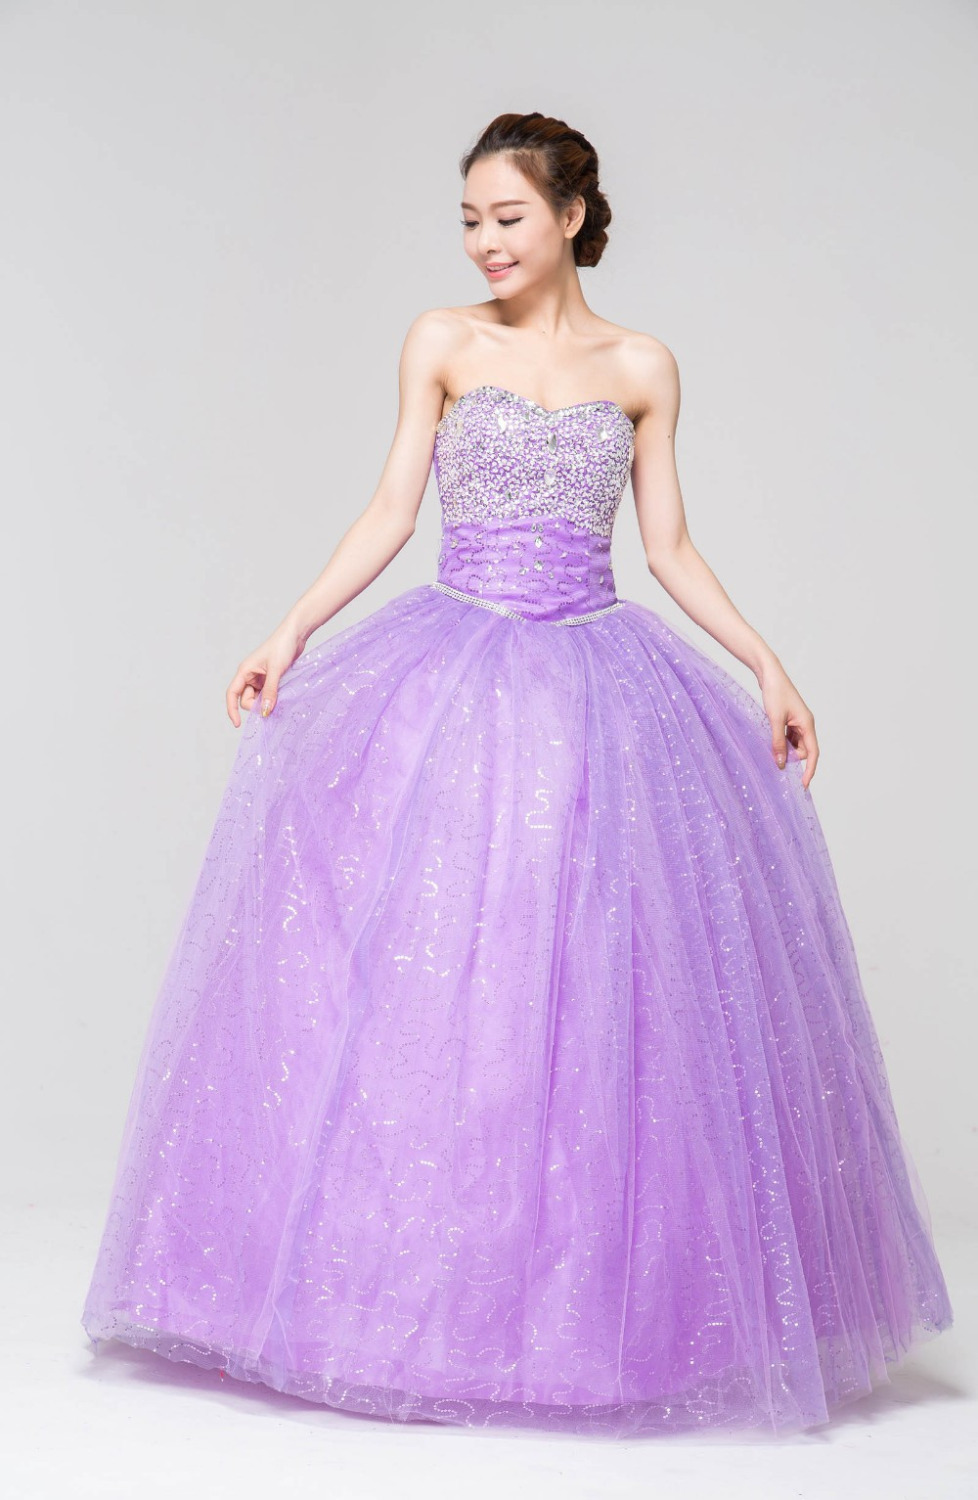 Lavender Crystal Wedding Dresses Pictures – Fashion dresses